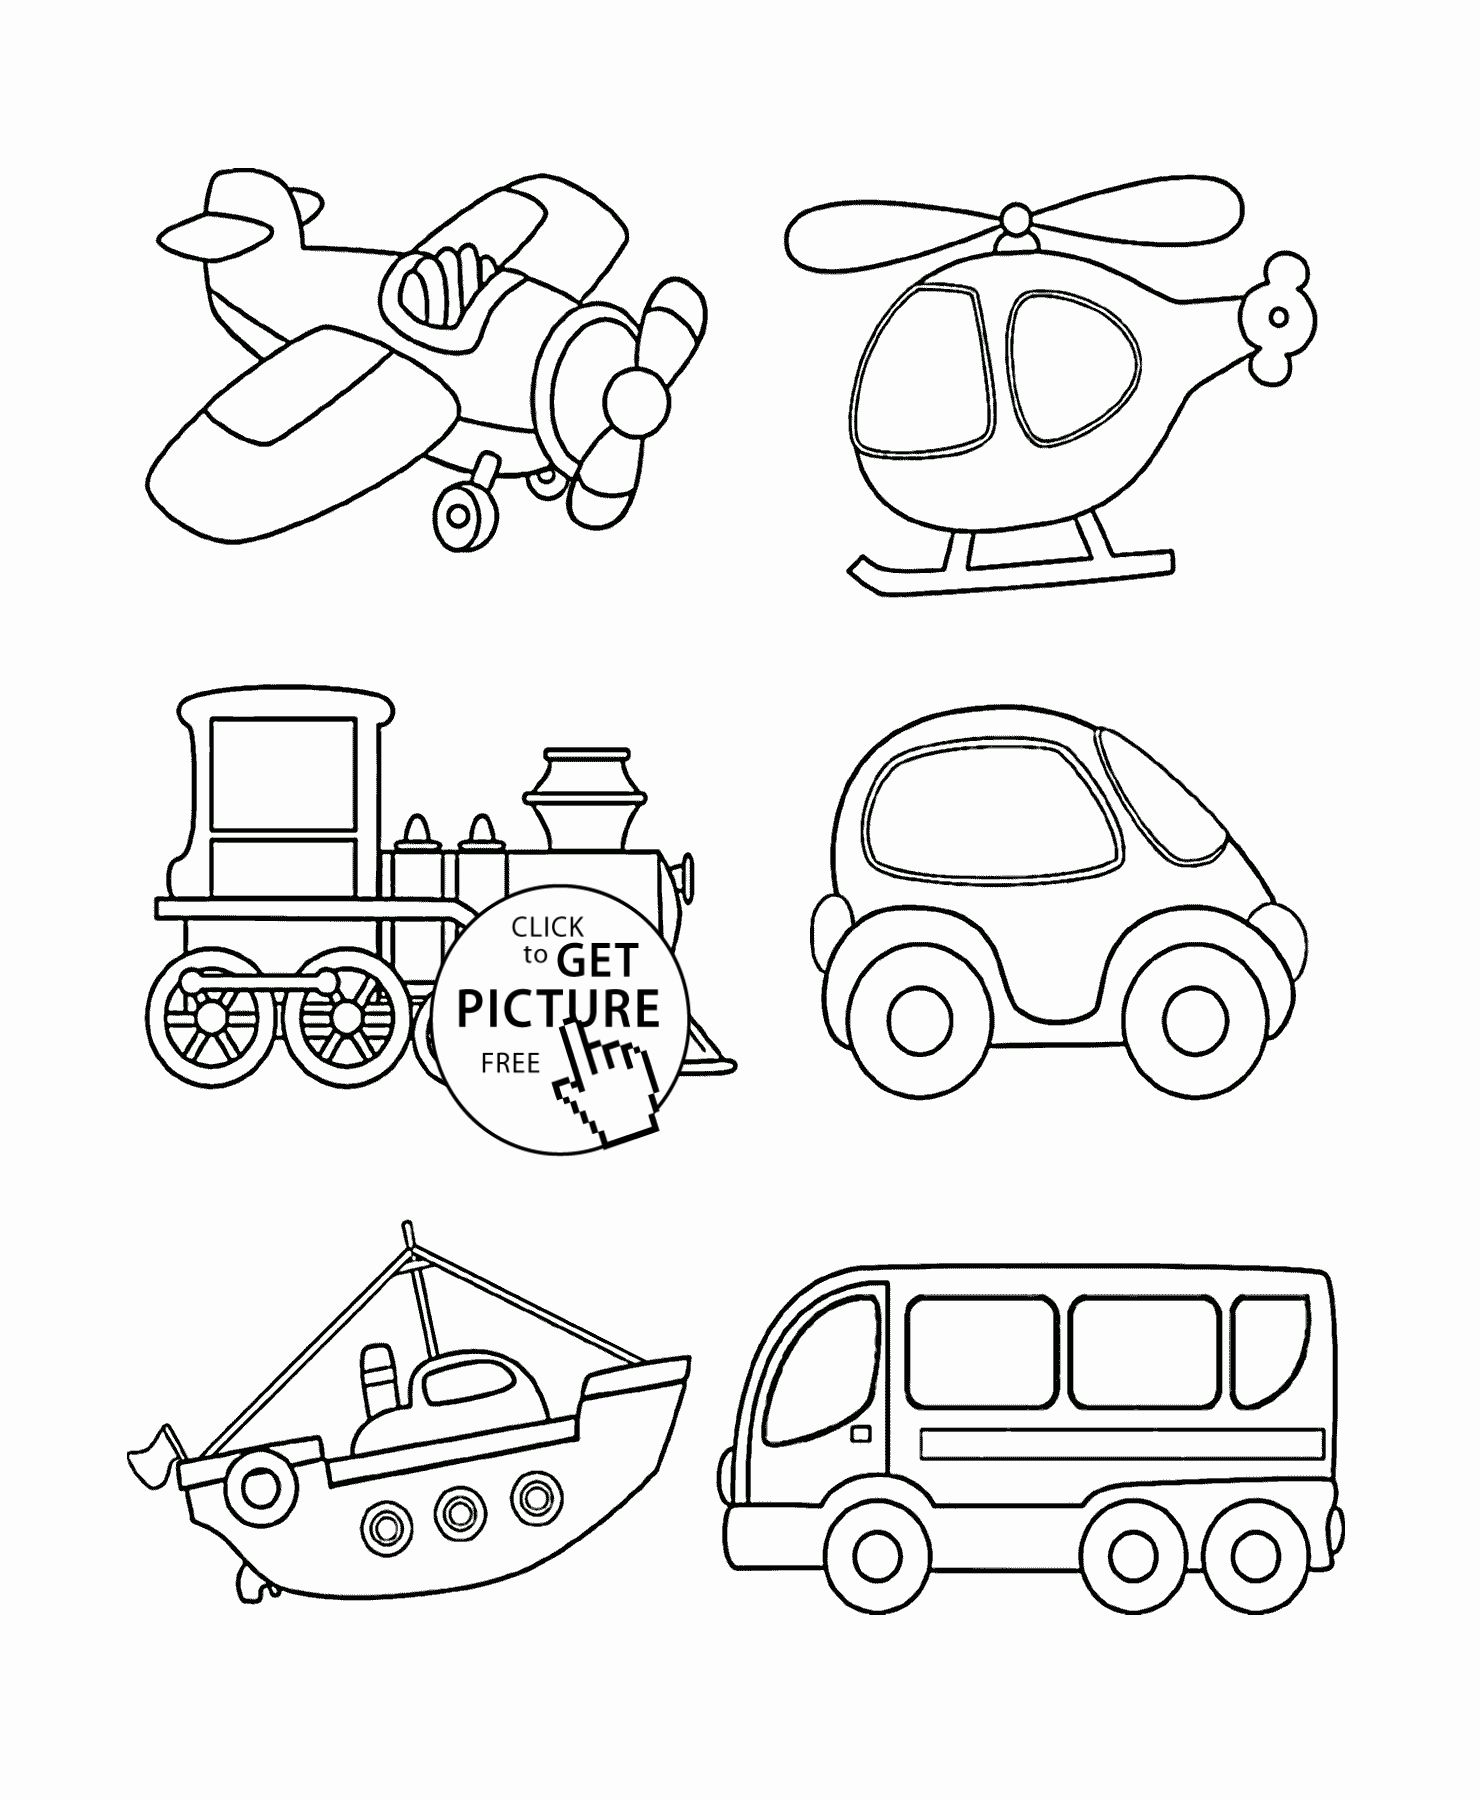 Transport Coloring Pages Free Printable in 2020